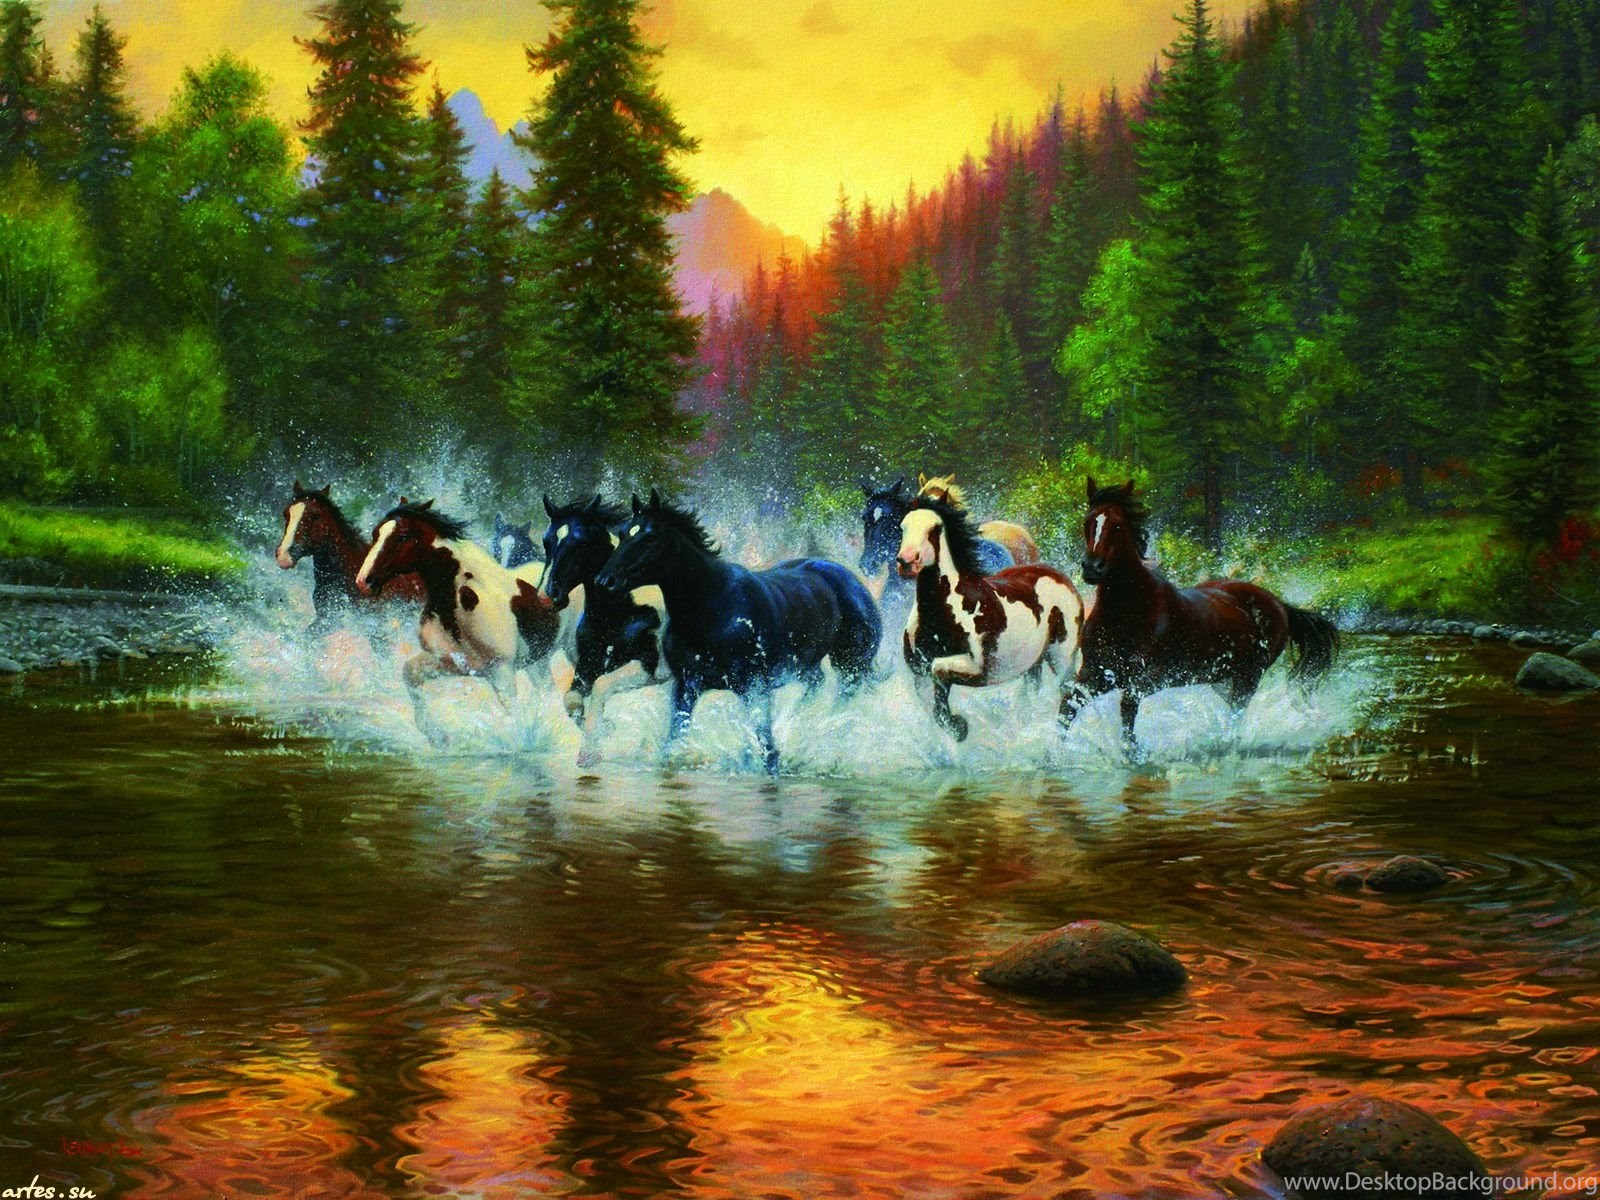 Horses Wild Sunset River Water Firs Herd Nature 5843 Wide